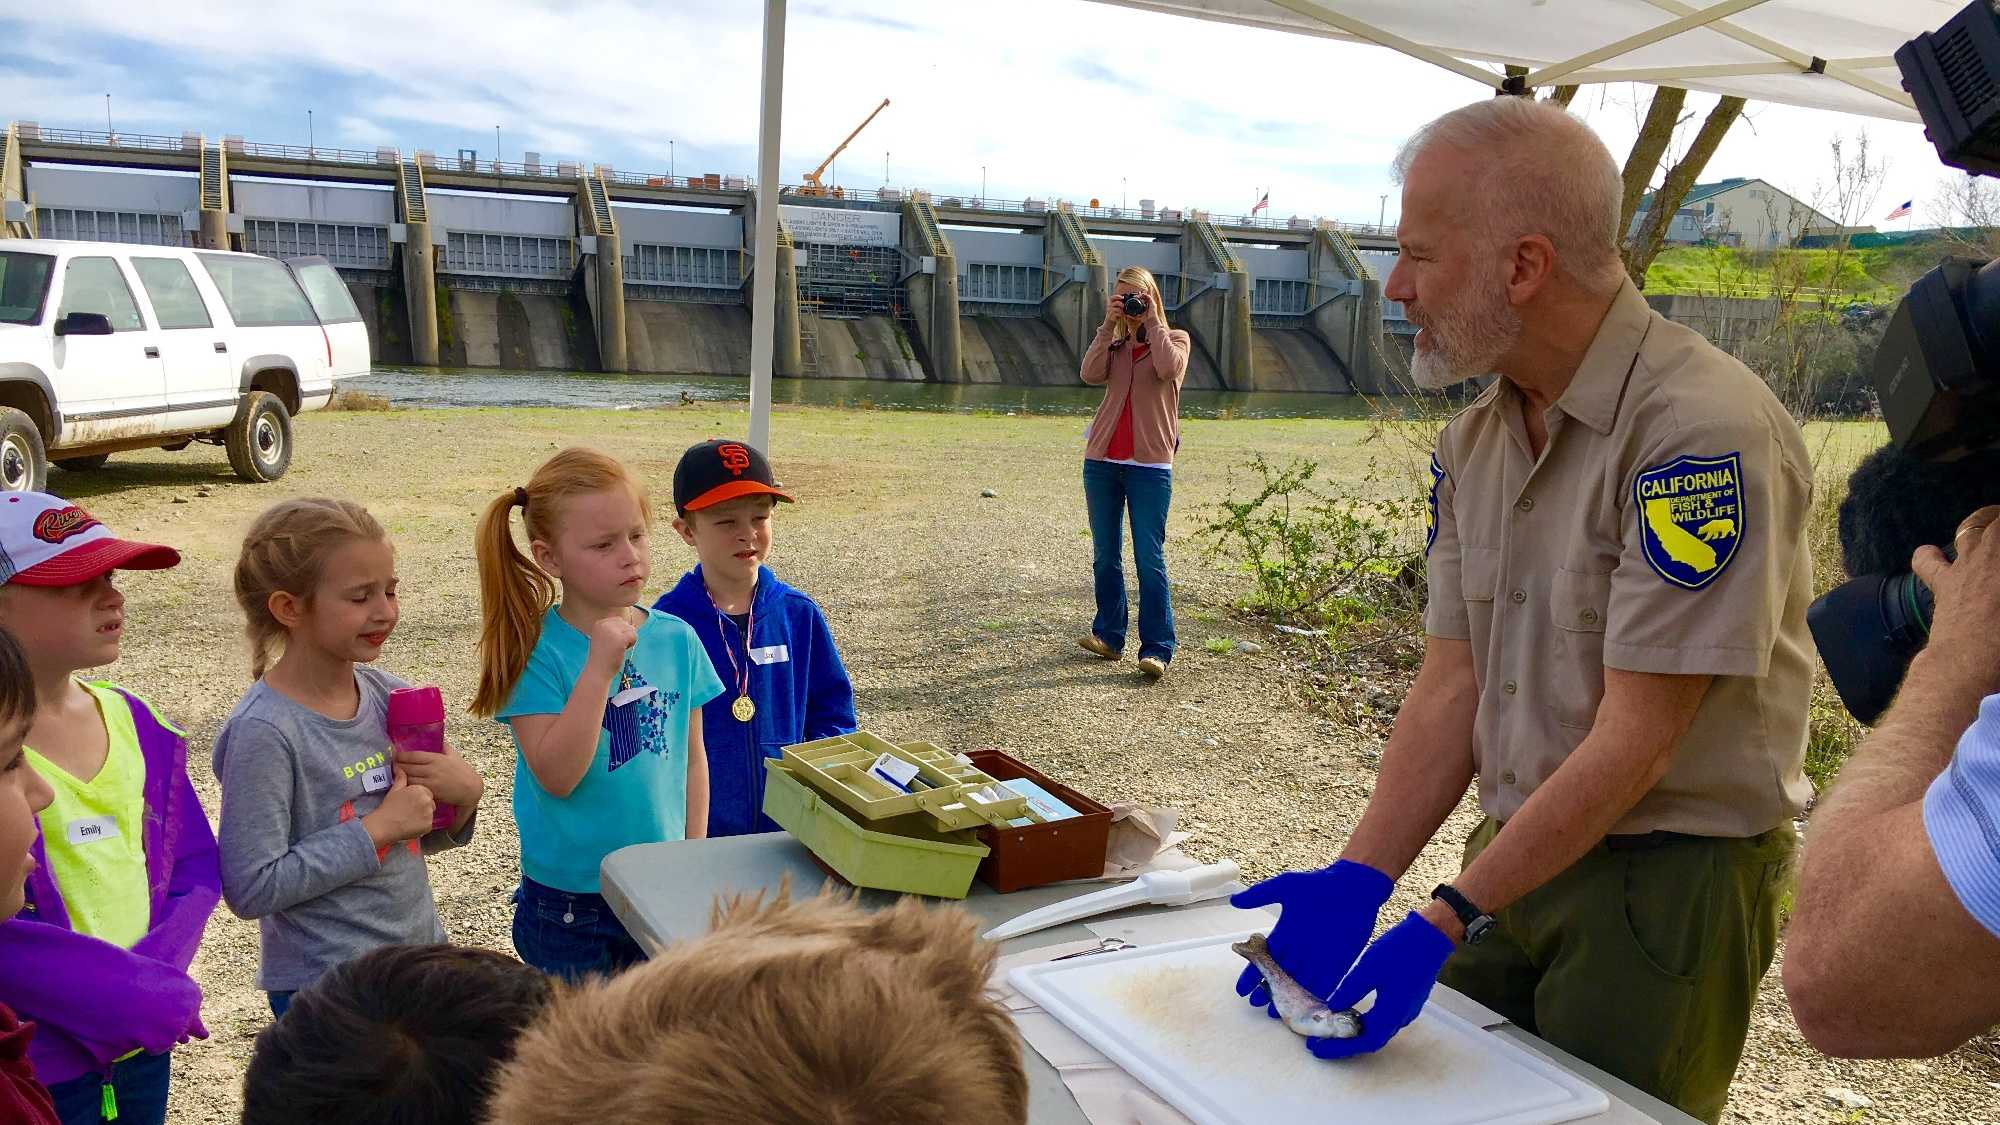 Dewey Elementary School first-grade students learn about fish in the American River during a field trip to Nimbus Dam on Friday, Feb. 26, 2016.